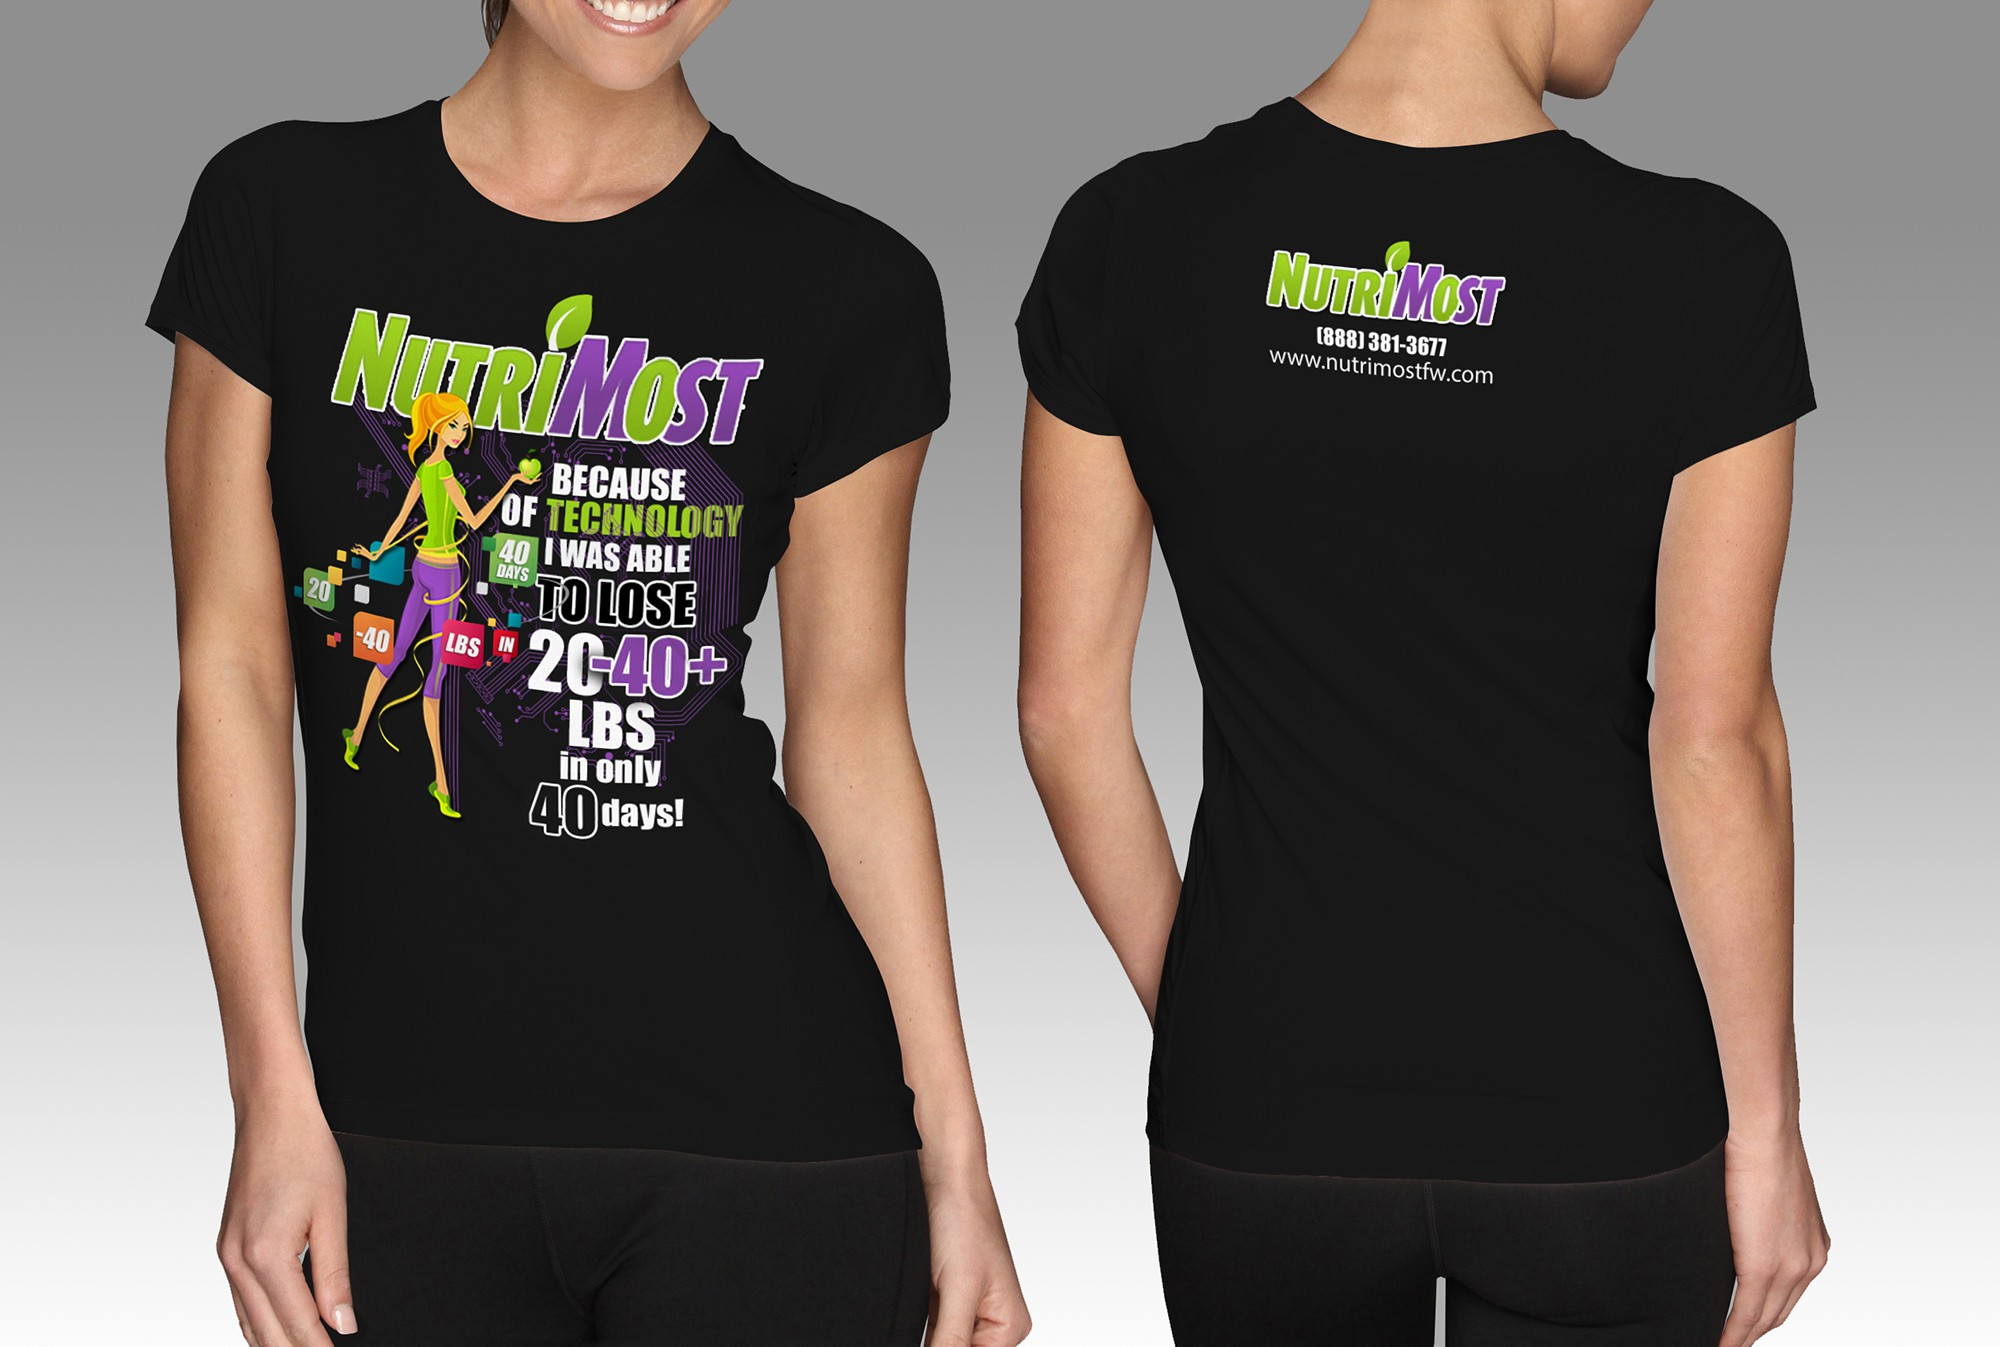 Design catchy tshirt for technology based weight loss program where people can lose 20-40+ lbs in